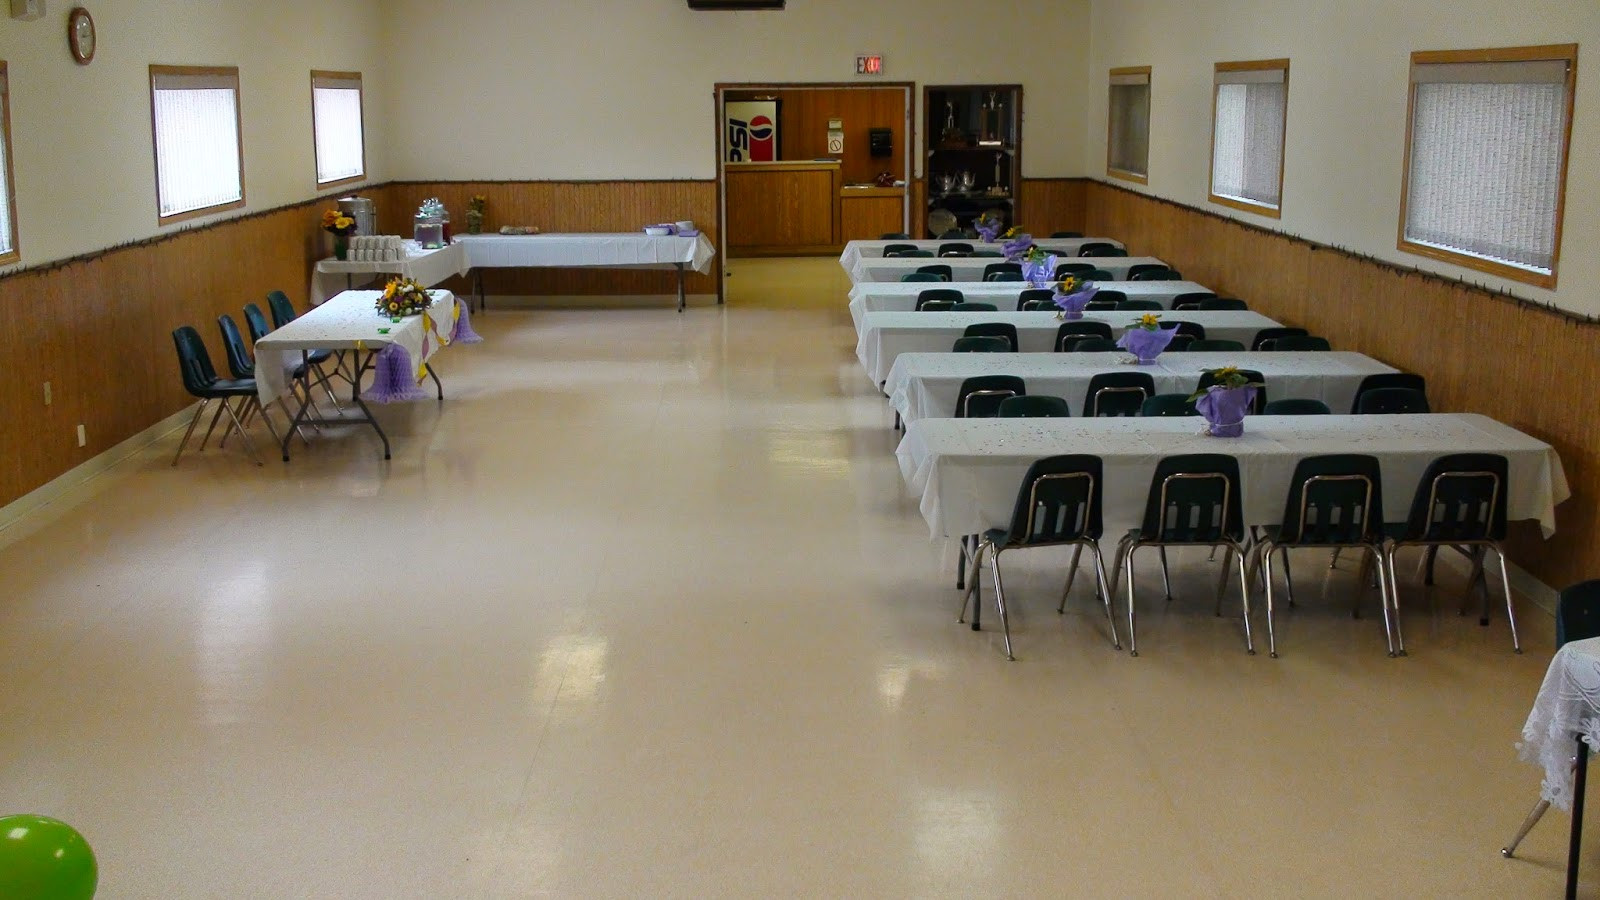 Birthday Party Halls For Rent  Bourkevale munity Centre Hall Rentals Rates